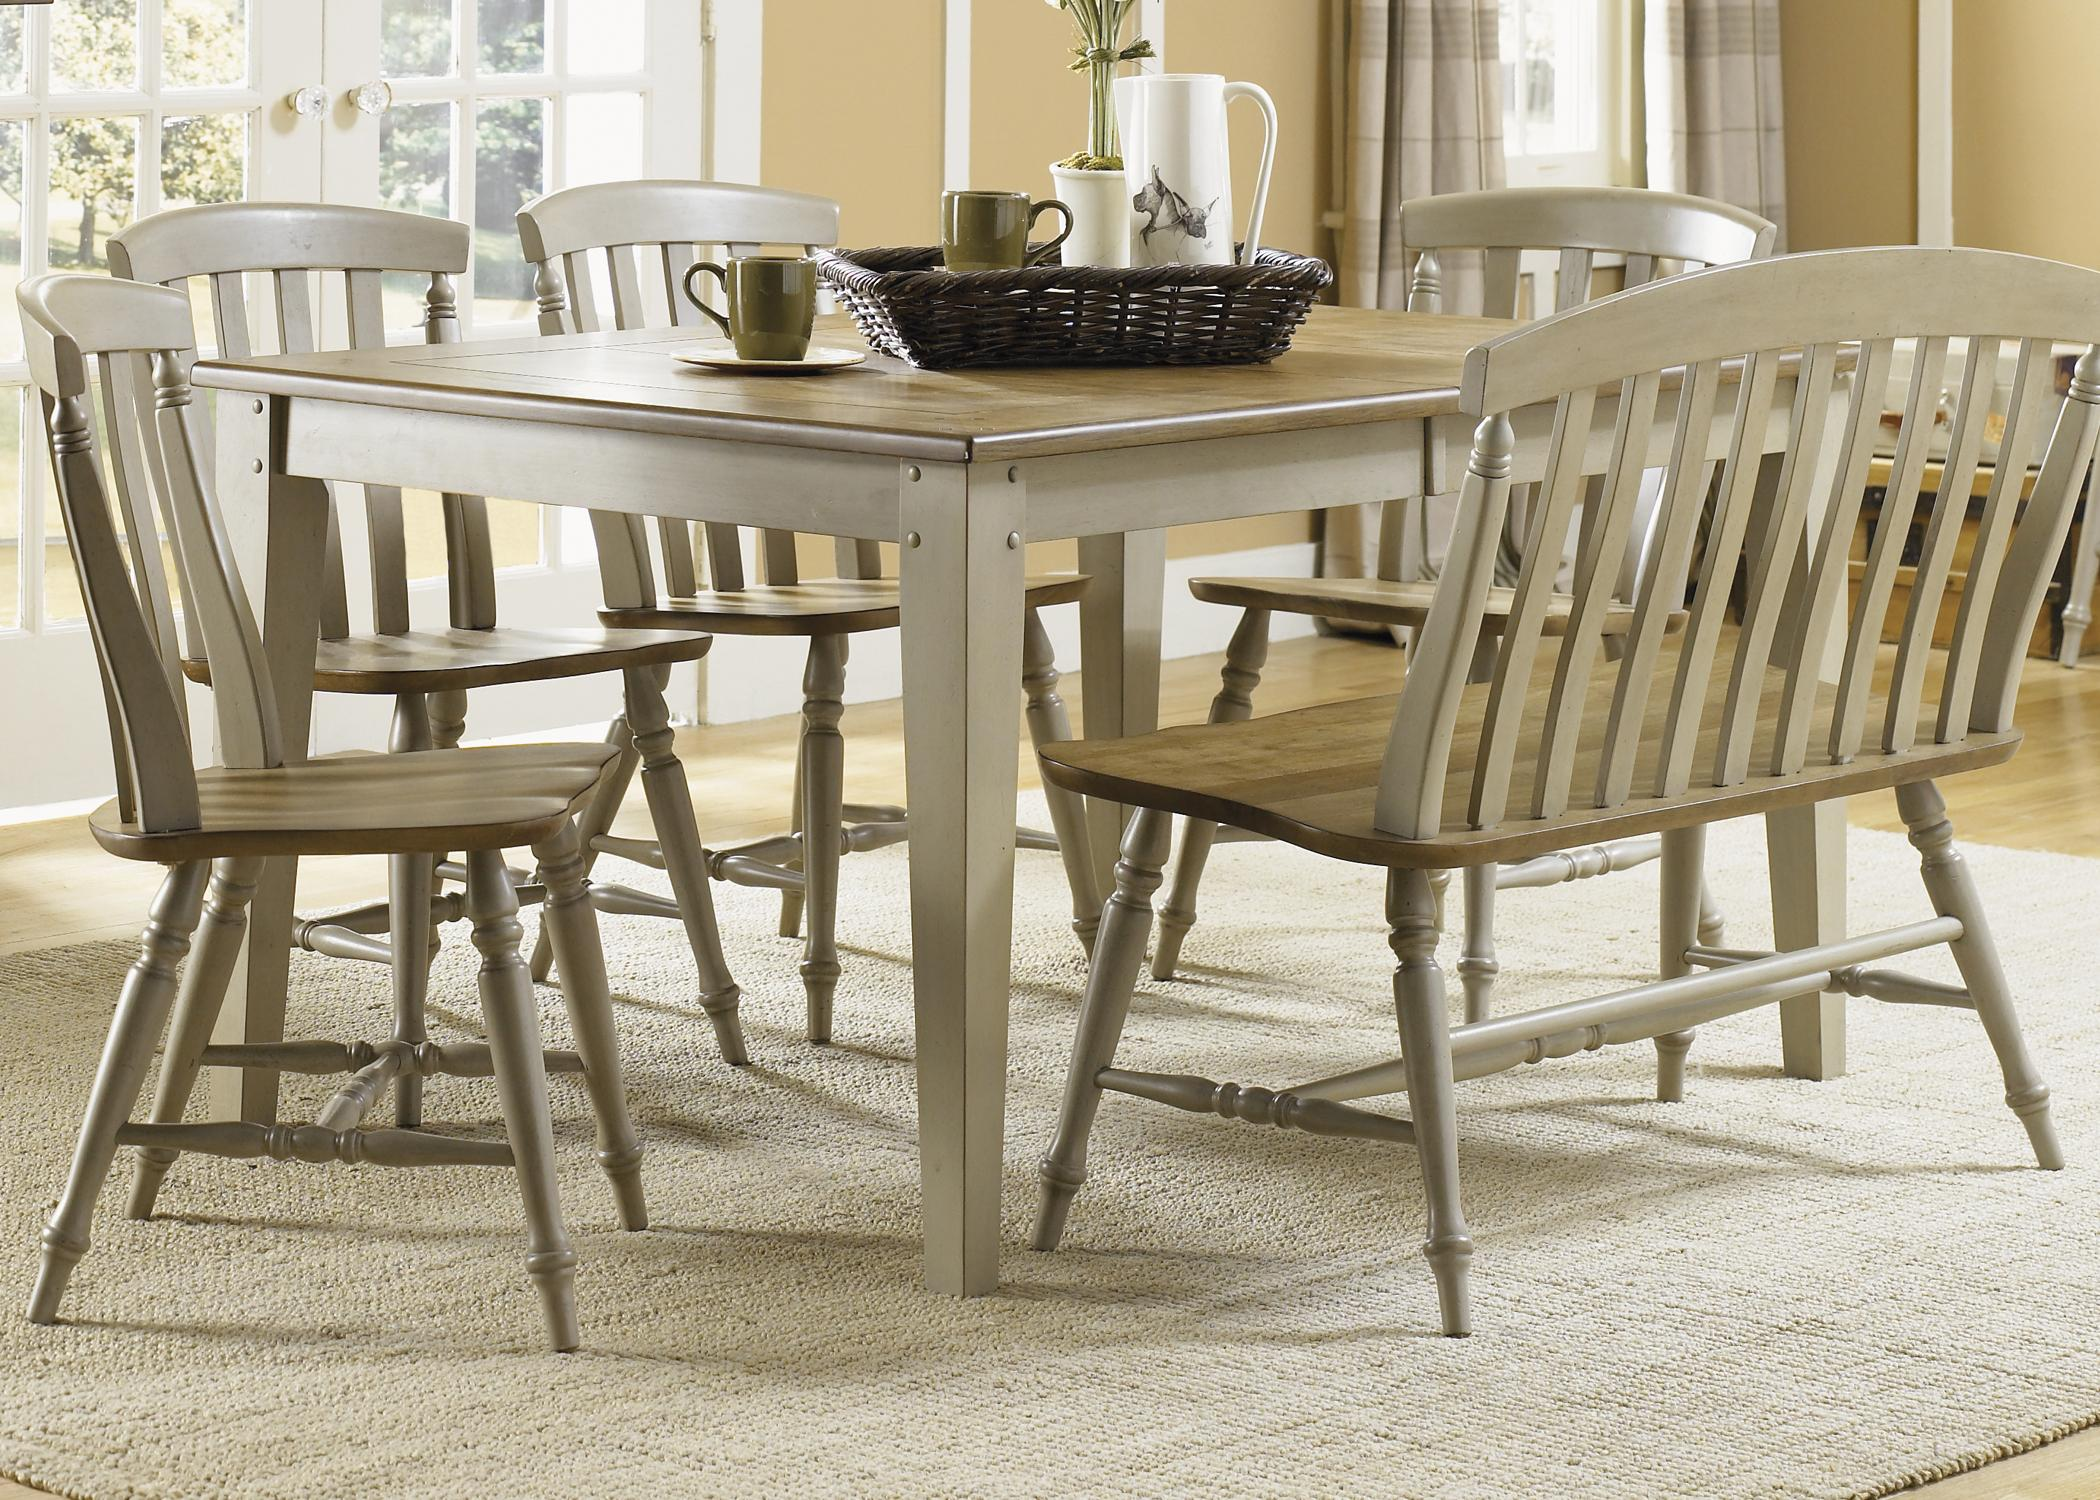 Six Piece Dining Table Set with Chairs and Bench by Liberty ...